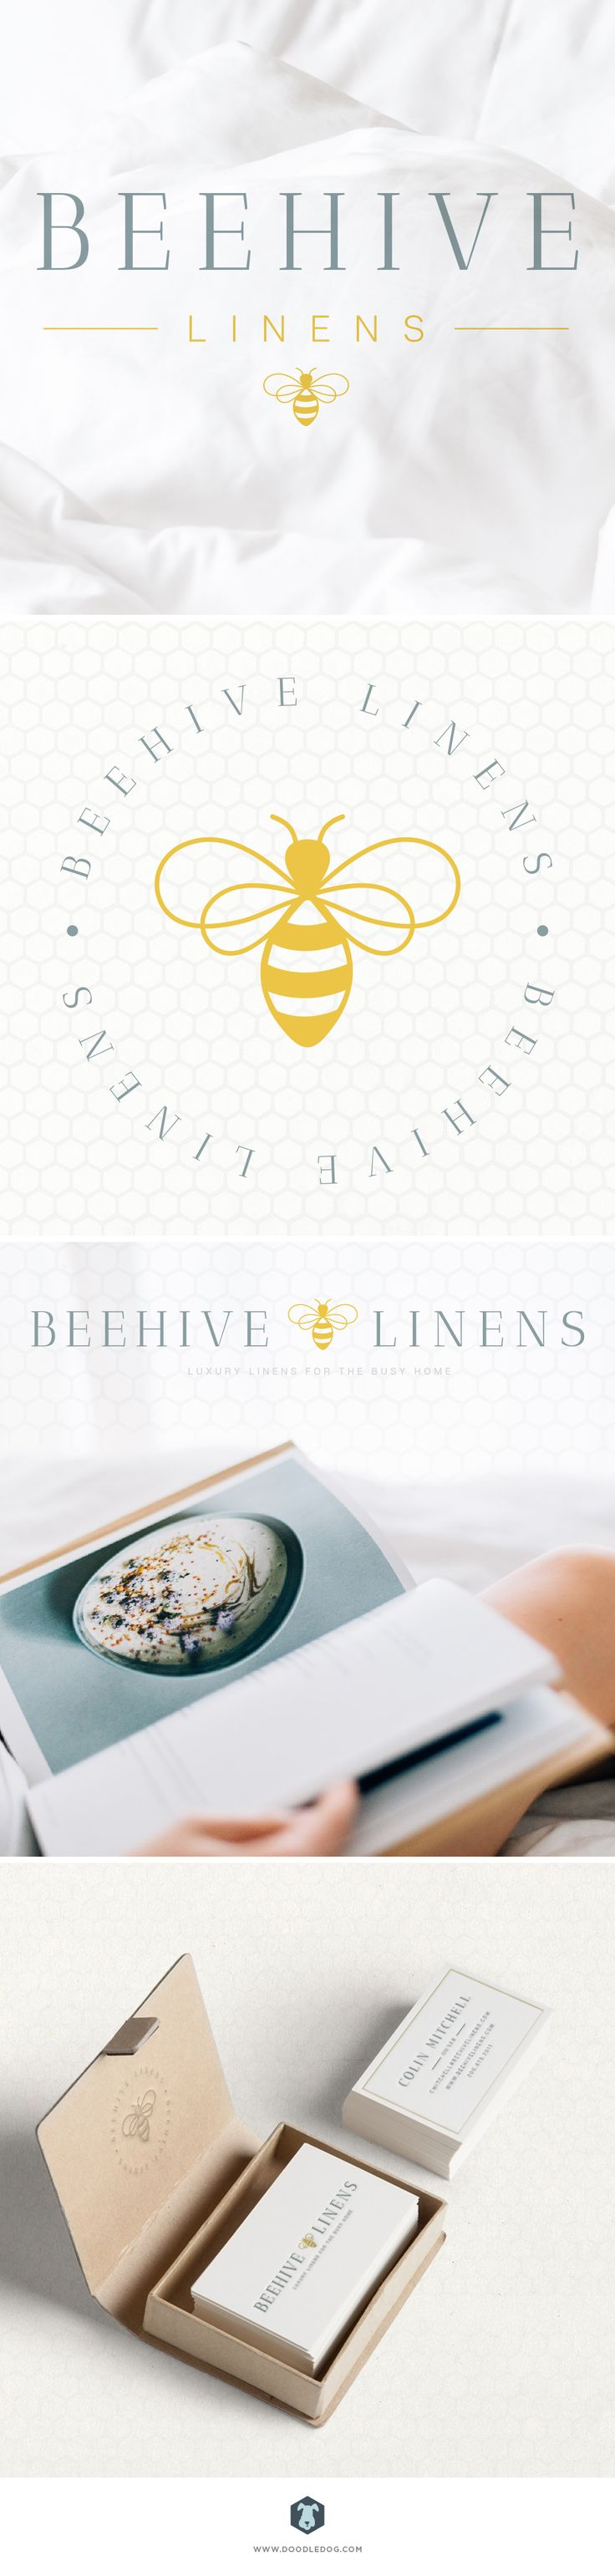 For the brand design, we created a signature Bee icon, with warm yellow, bright clean white and classic welcoming blue hue. In addition to the logo design and icon – we created a business cards, letterhead design, mood board, badge design and more.